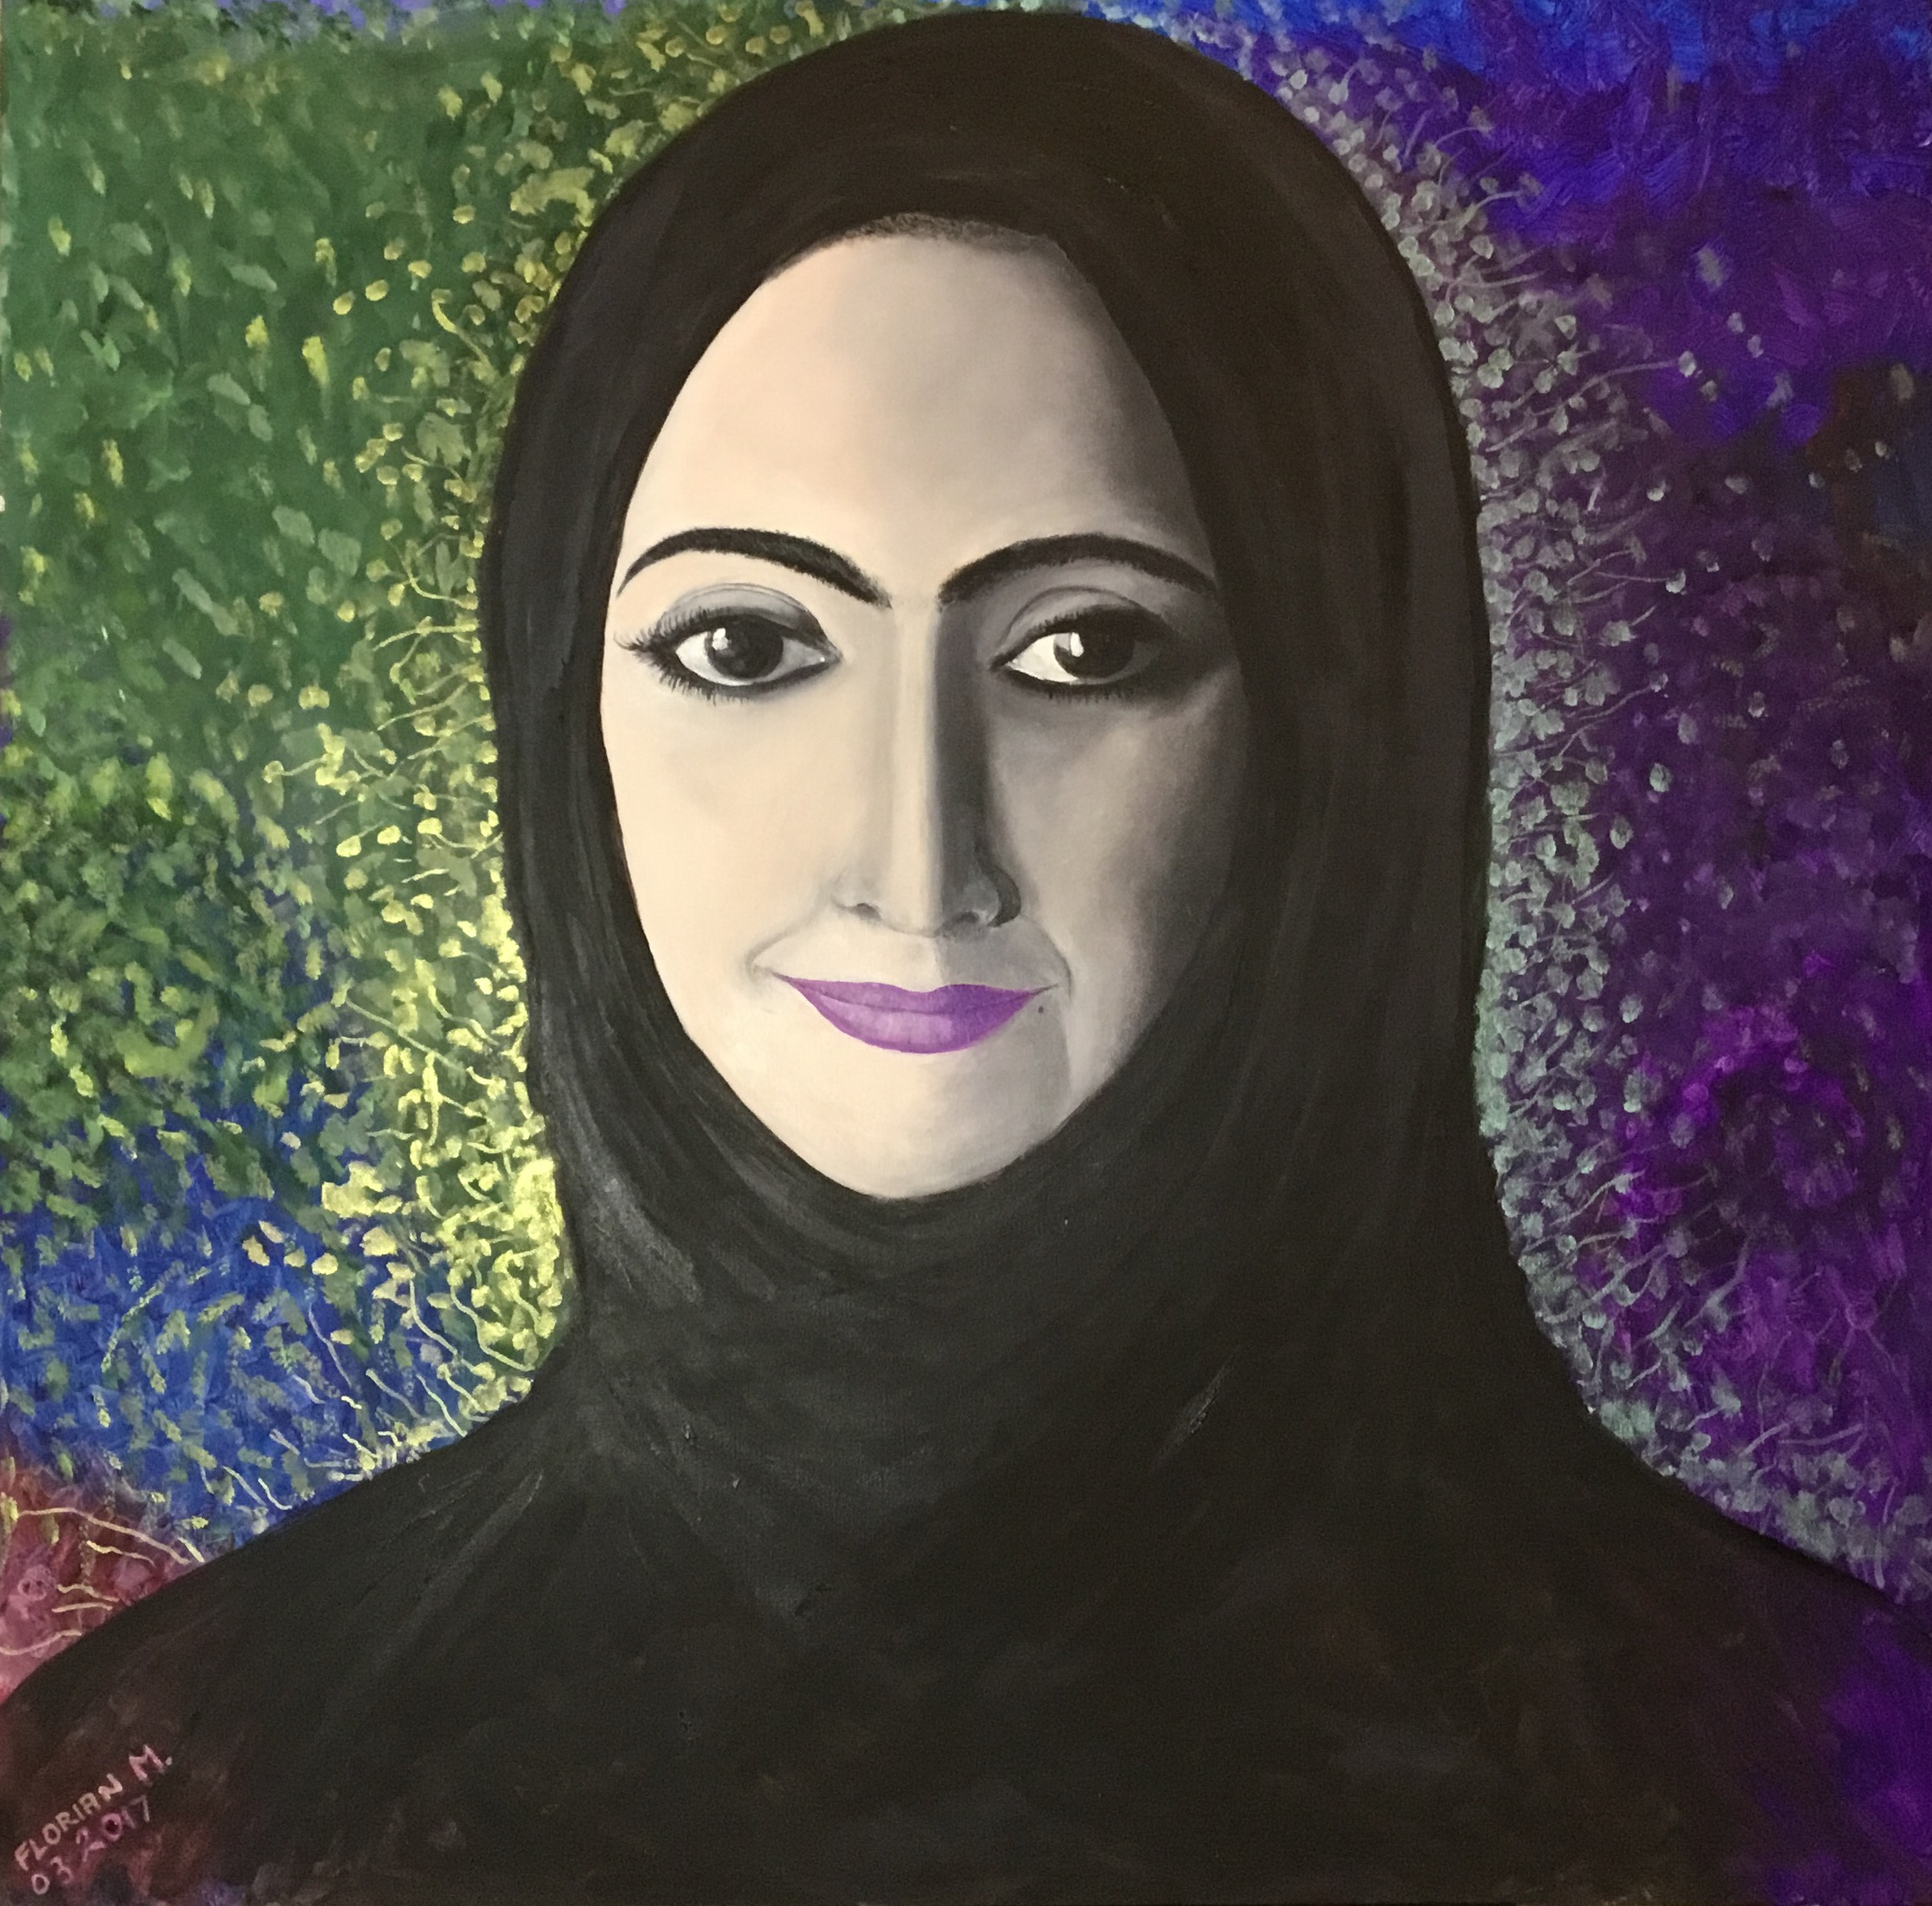 An Emirati lady, oil on canvas, 100x100 cm